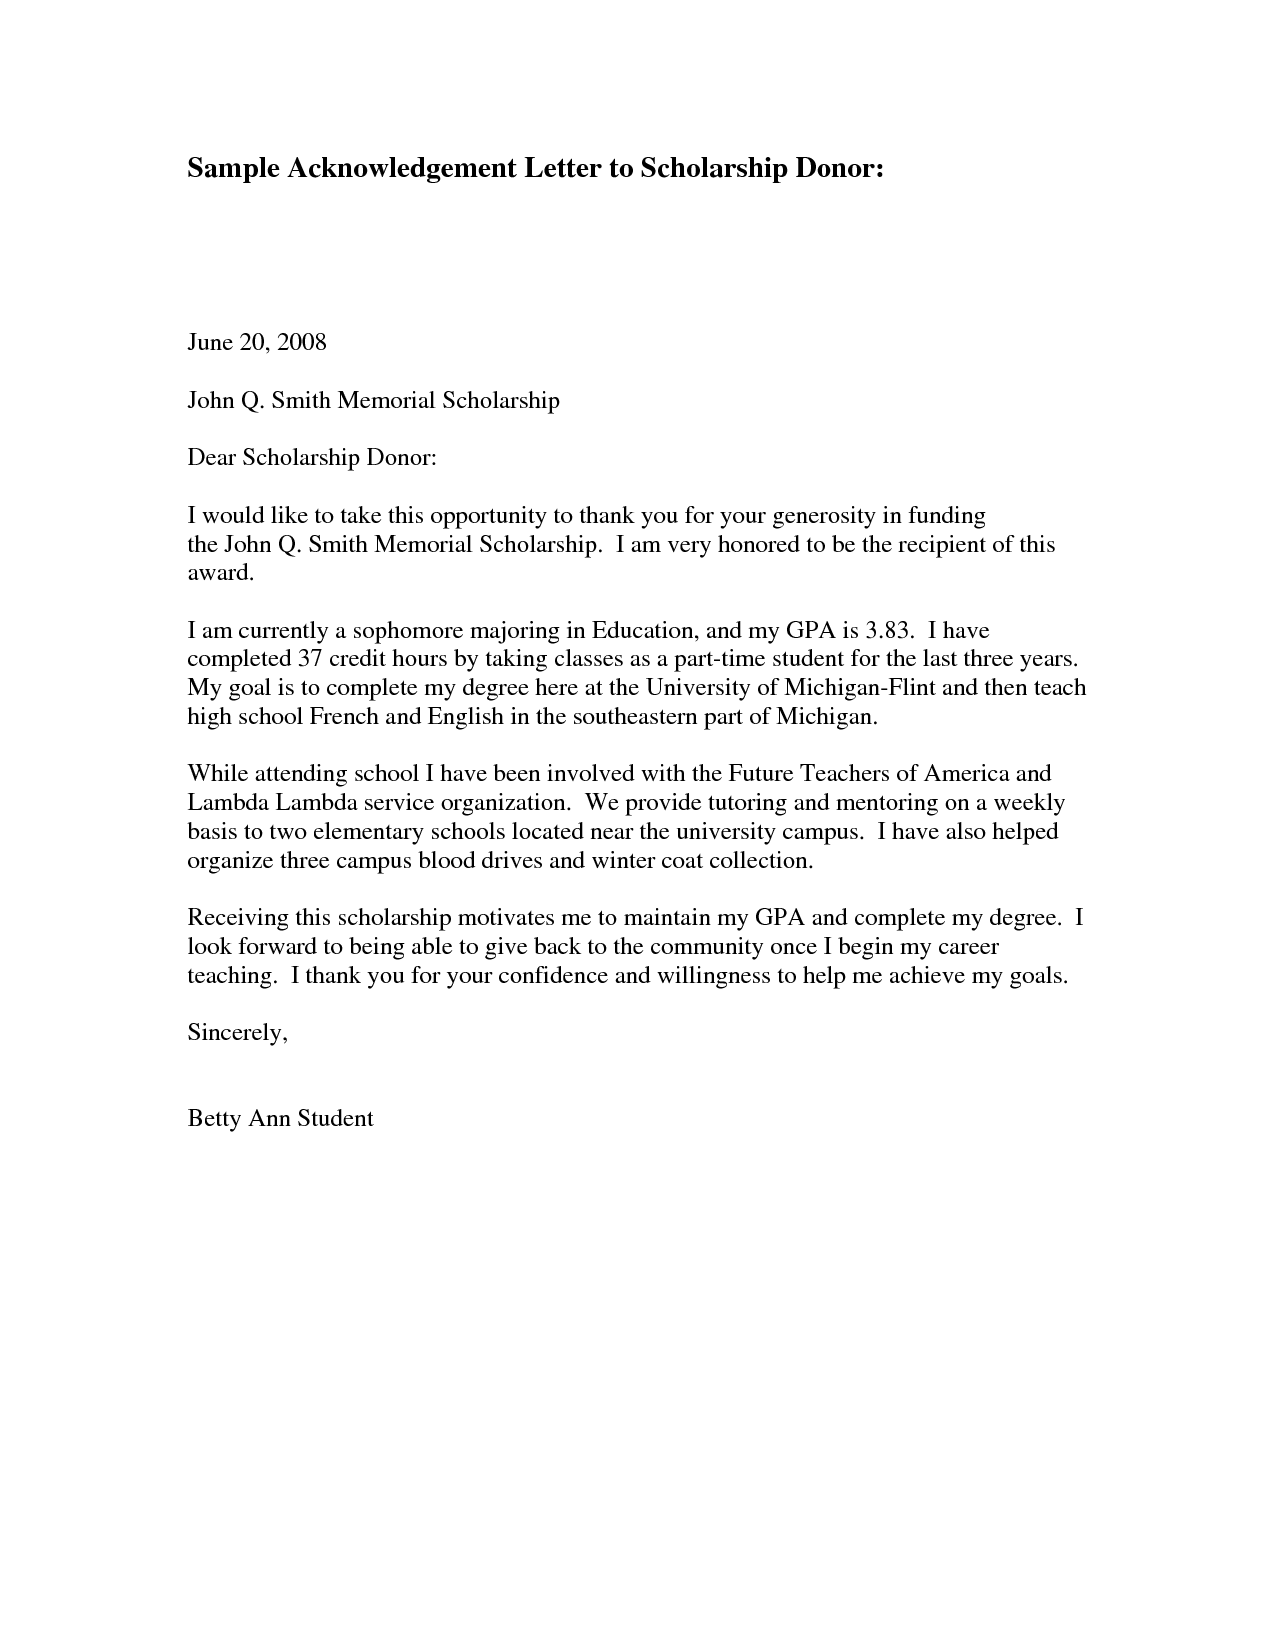 Donor Thank You Letter Sample | Sample AcknowledgementThank You Letter To  Scholarship Donor